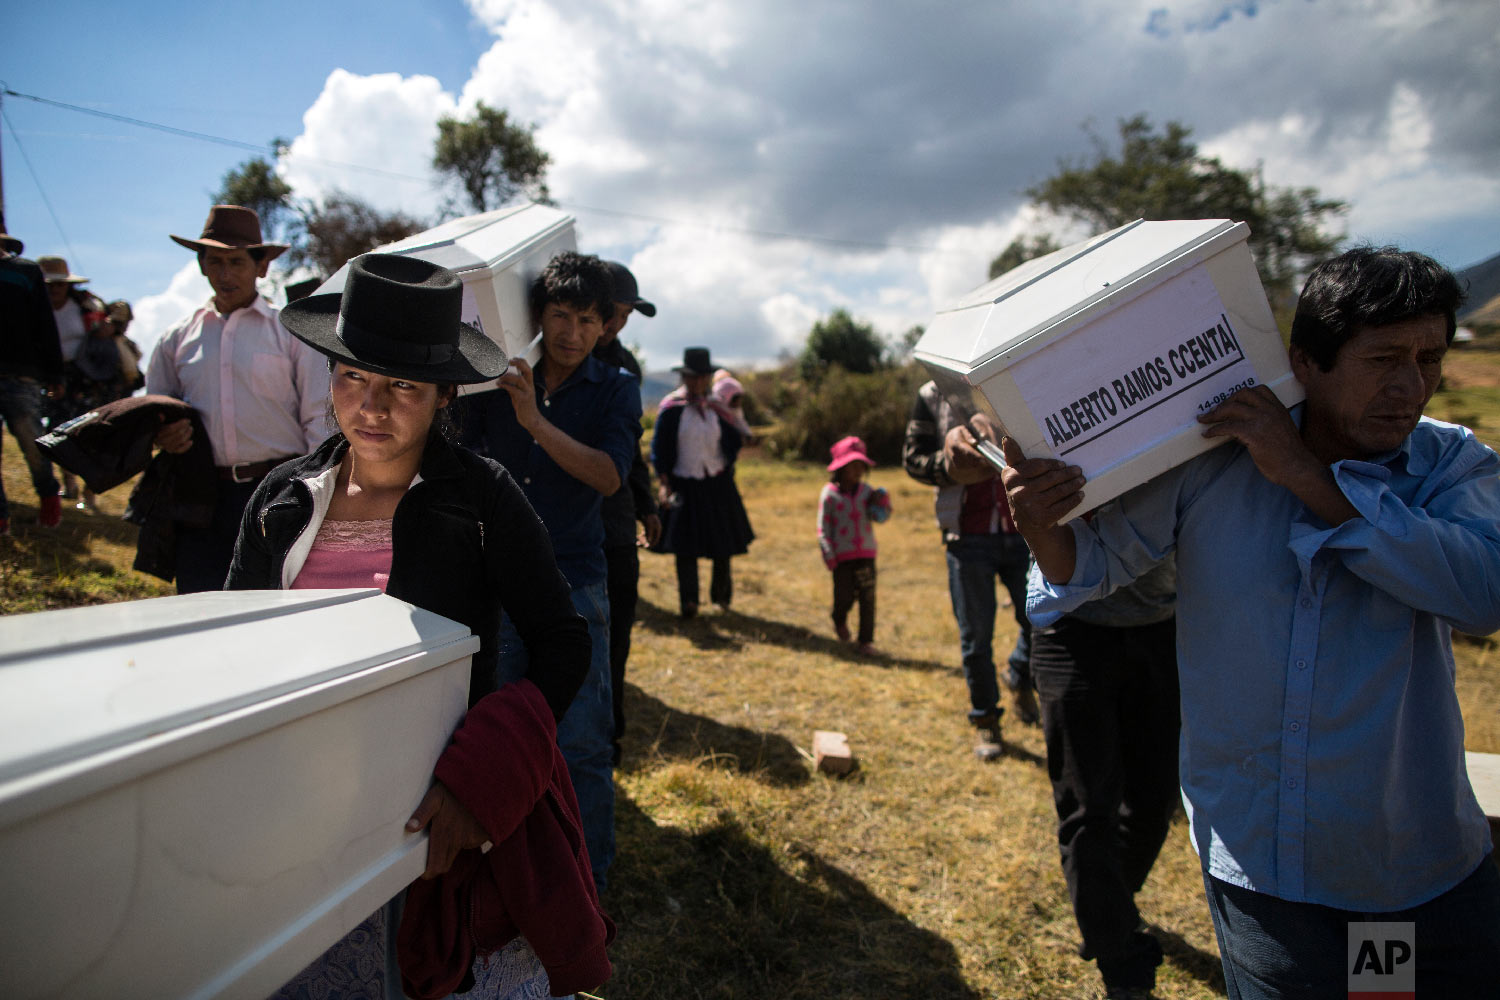 In this Aug. 15, 2018 photo, the relatives of people who were killed by the Shining Path guerrillas and the Peruvian army in the 1980s carry their remains to the cemetery for a proper burial in Quinuas, in Peru's Ayacucho province. (AP Photo/Rodrigo Abd)